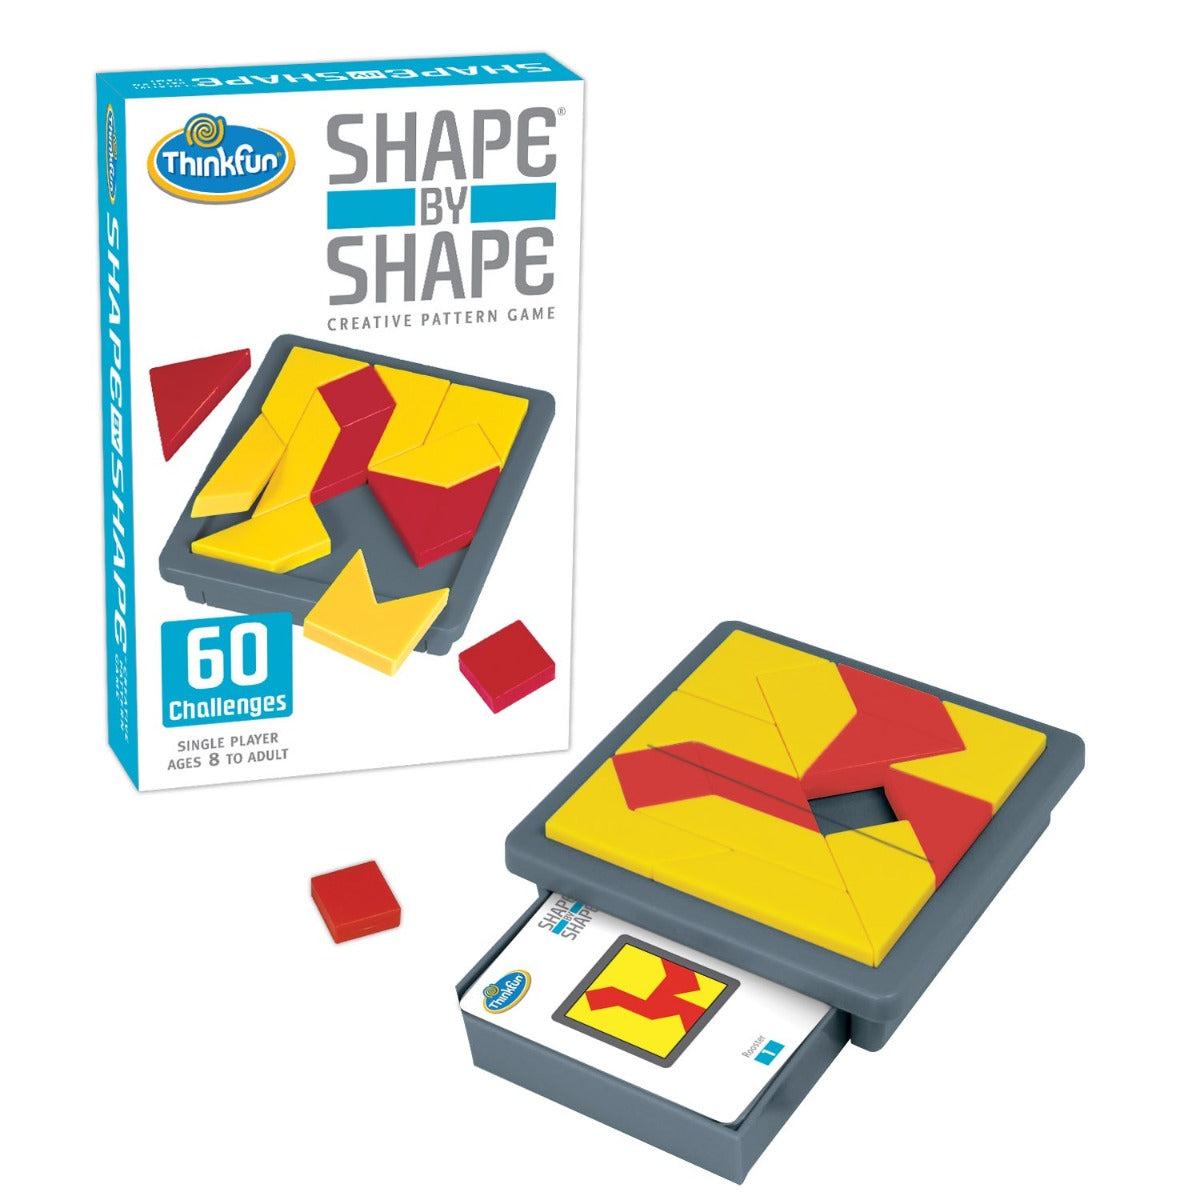 Thinkfun Shape by Shape logic game